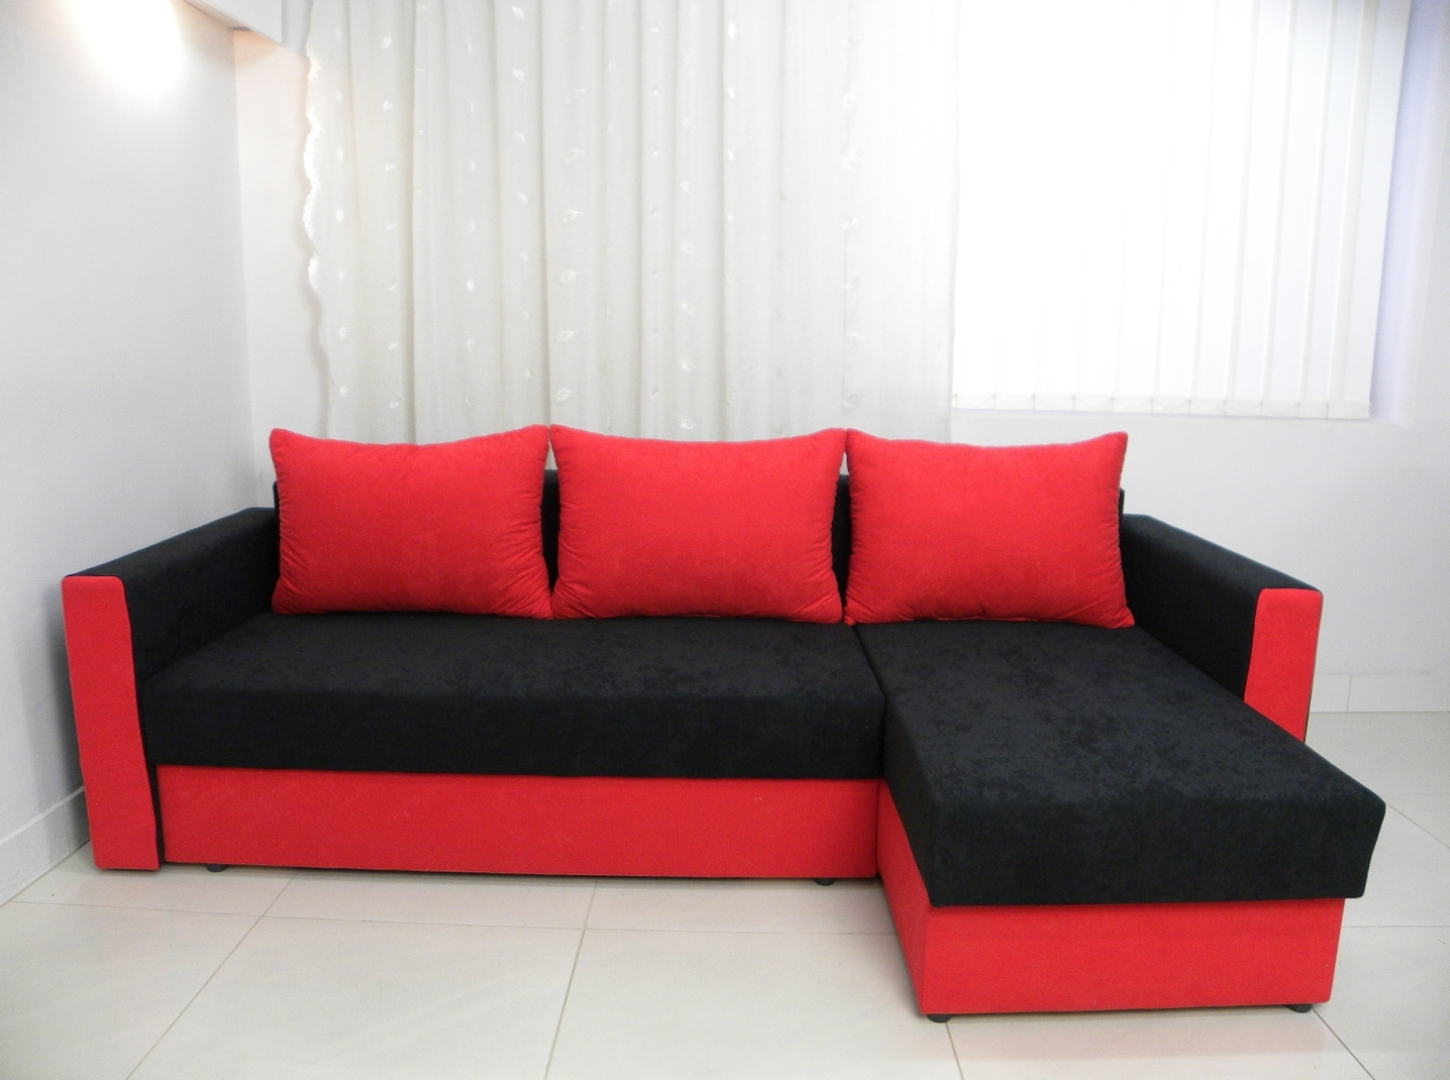 Red And Black Sofas Throughout Best And Newest Home Decor Red And Black Sofas Fabric Sofa Loveseat Set Fabricred (View 5 of 15)